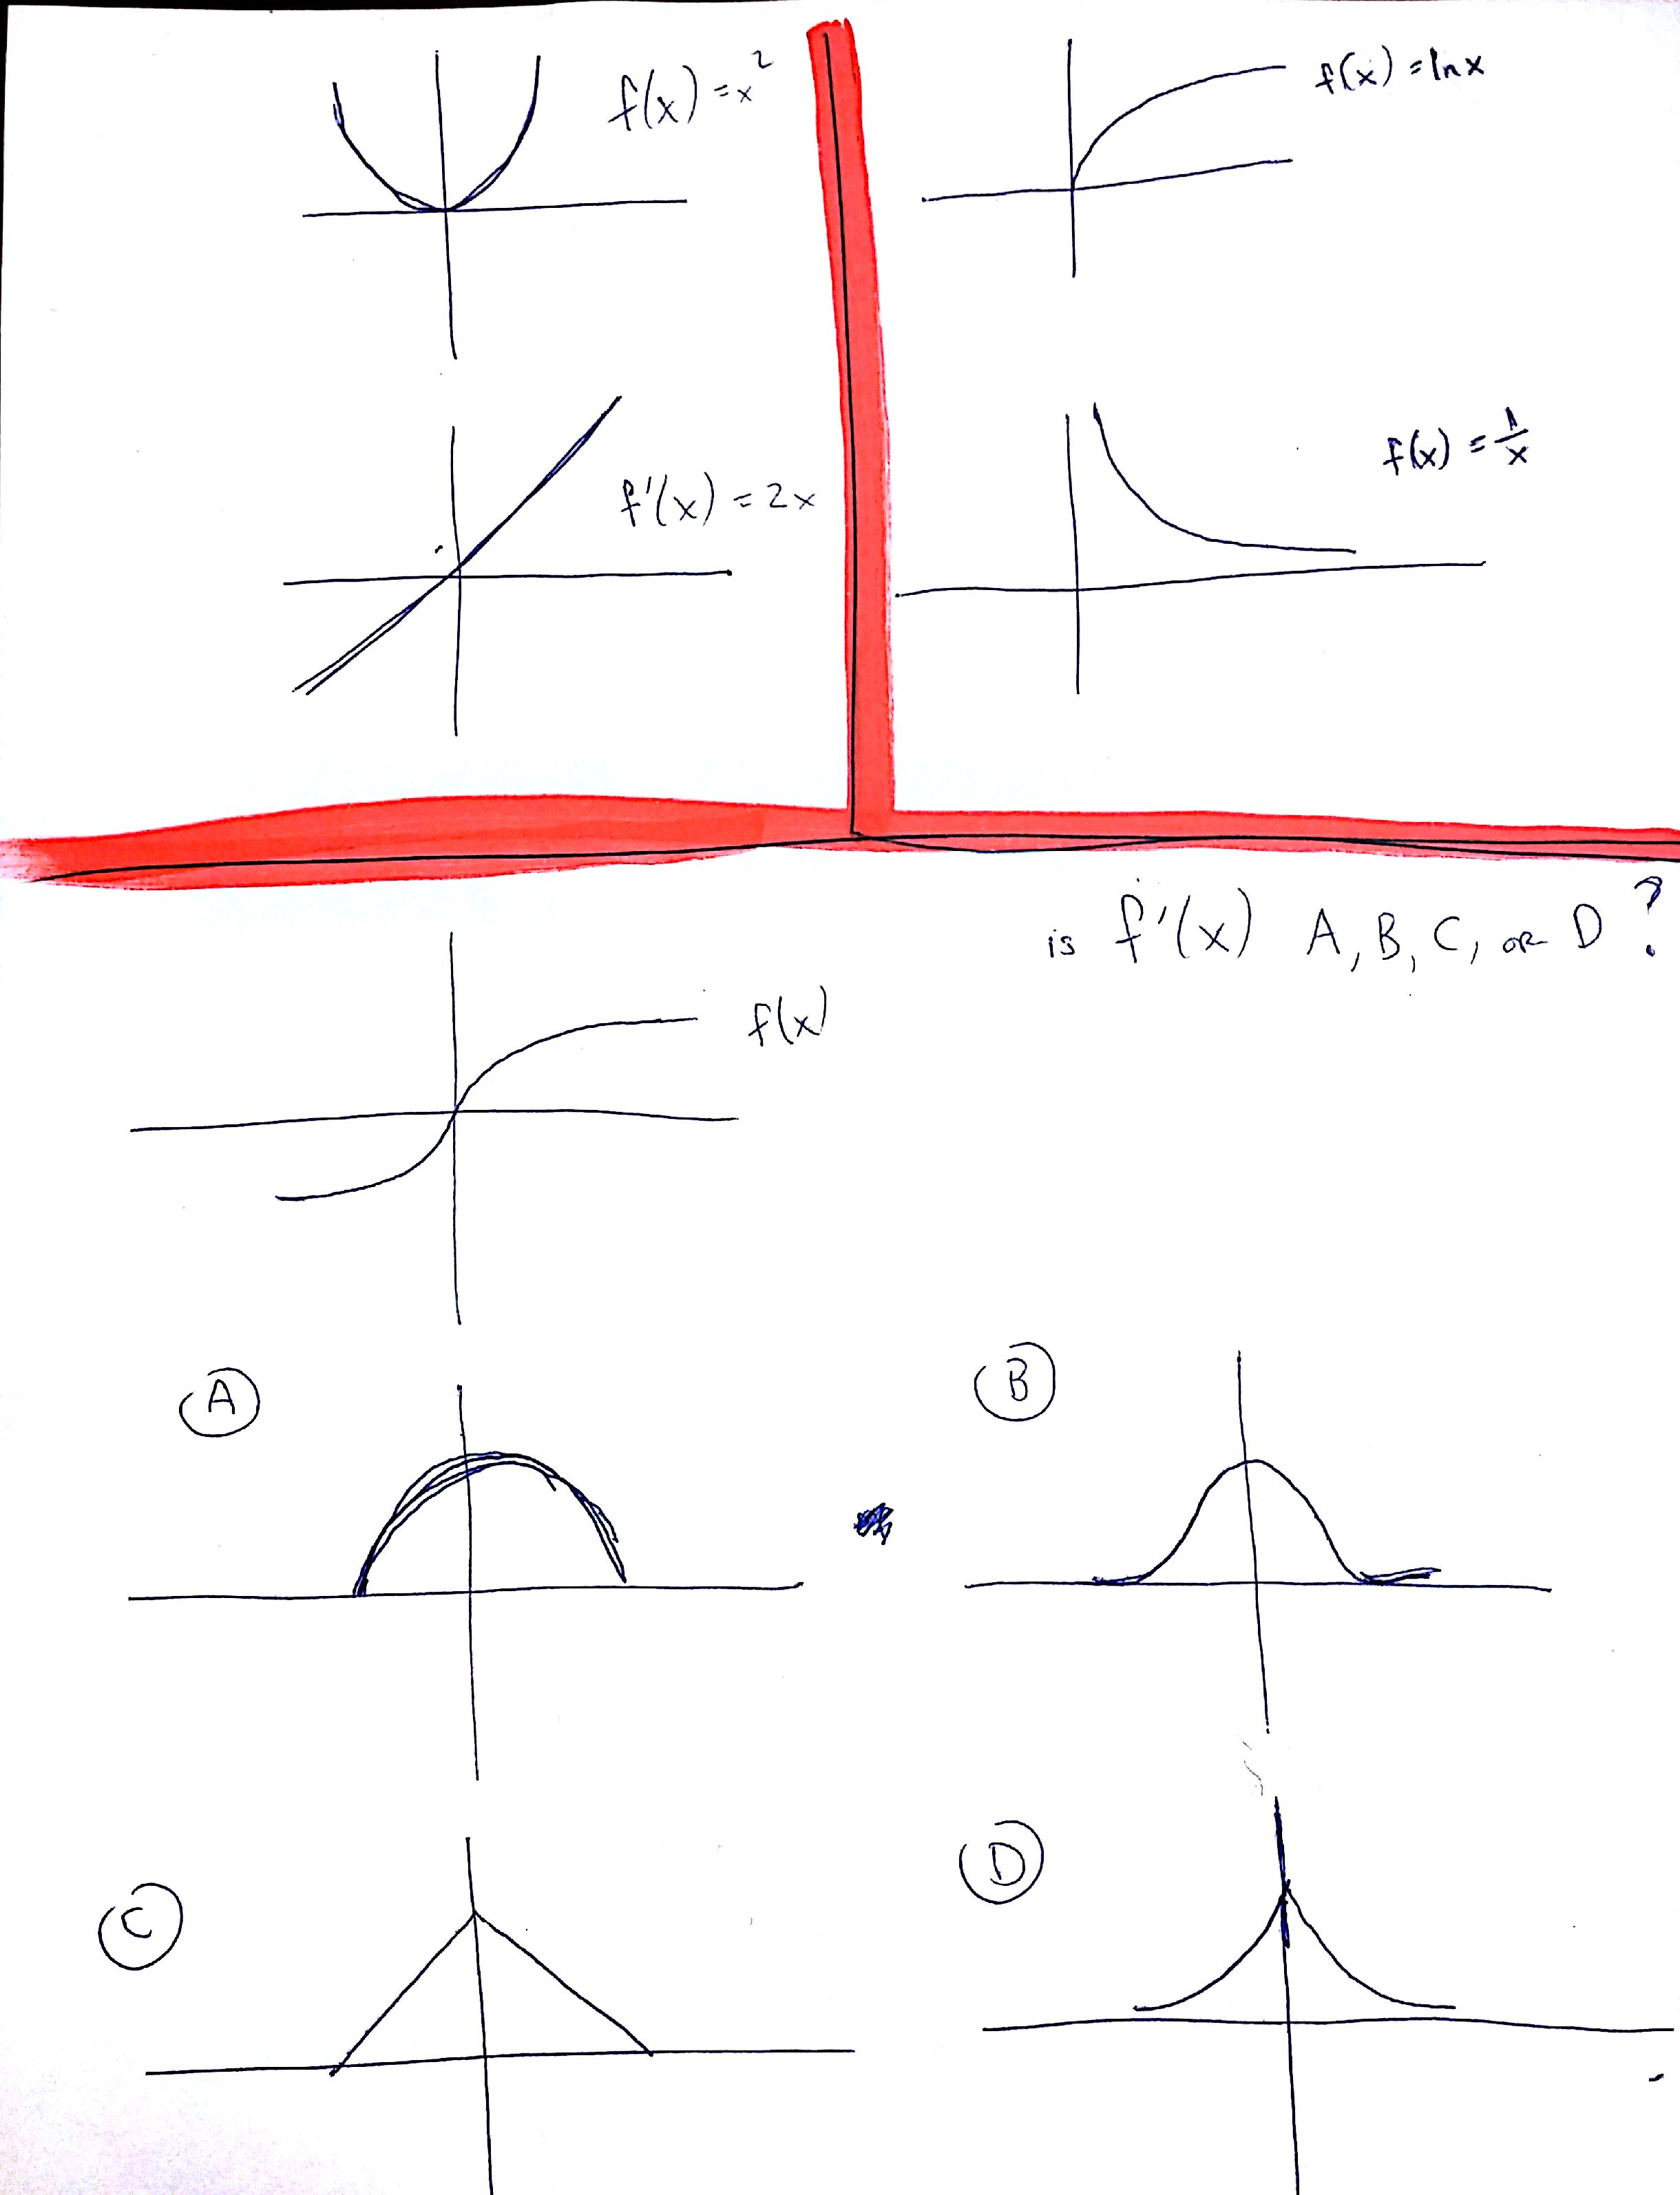 Practice Drawing Derivative Graphs